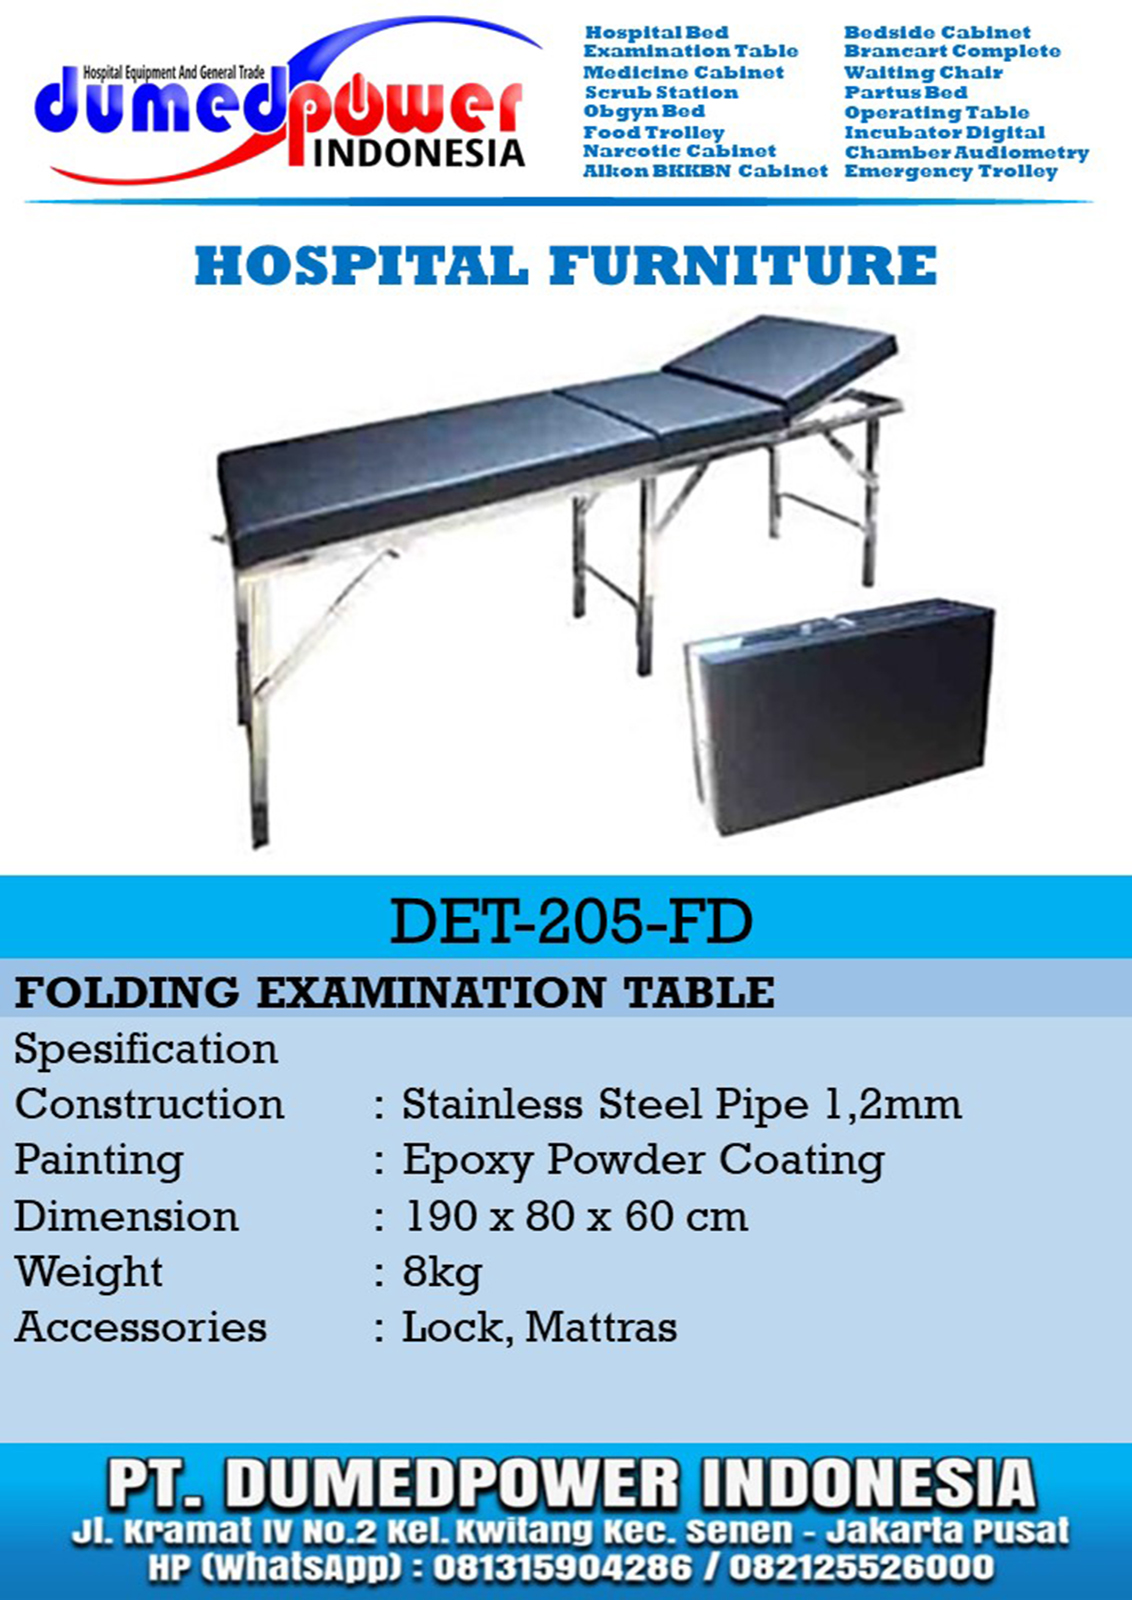 Folding Examination Table DET-205-FD